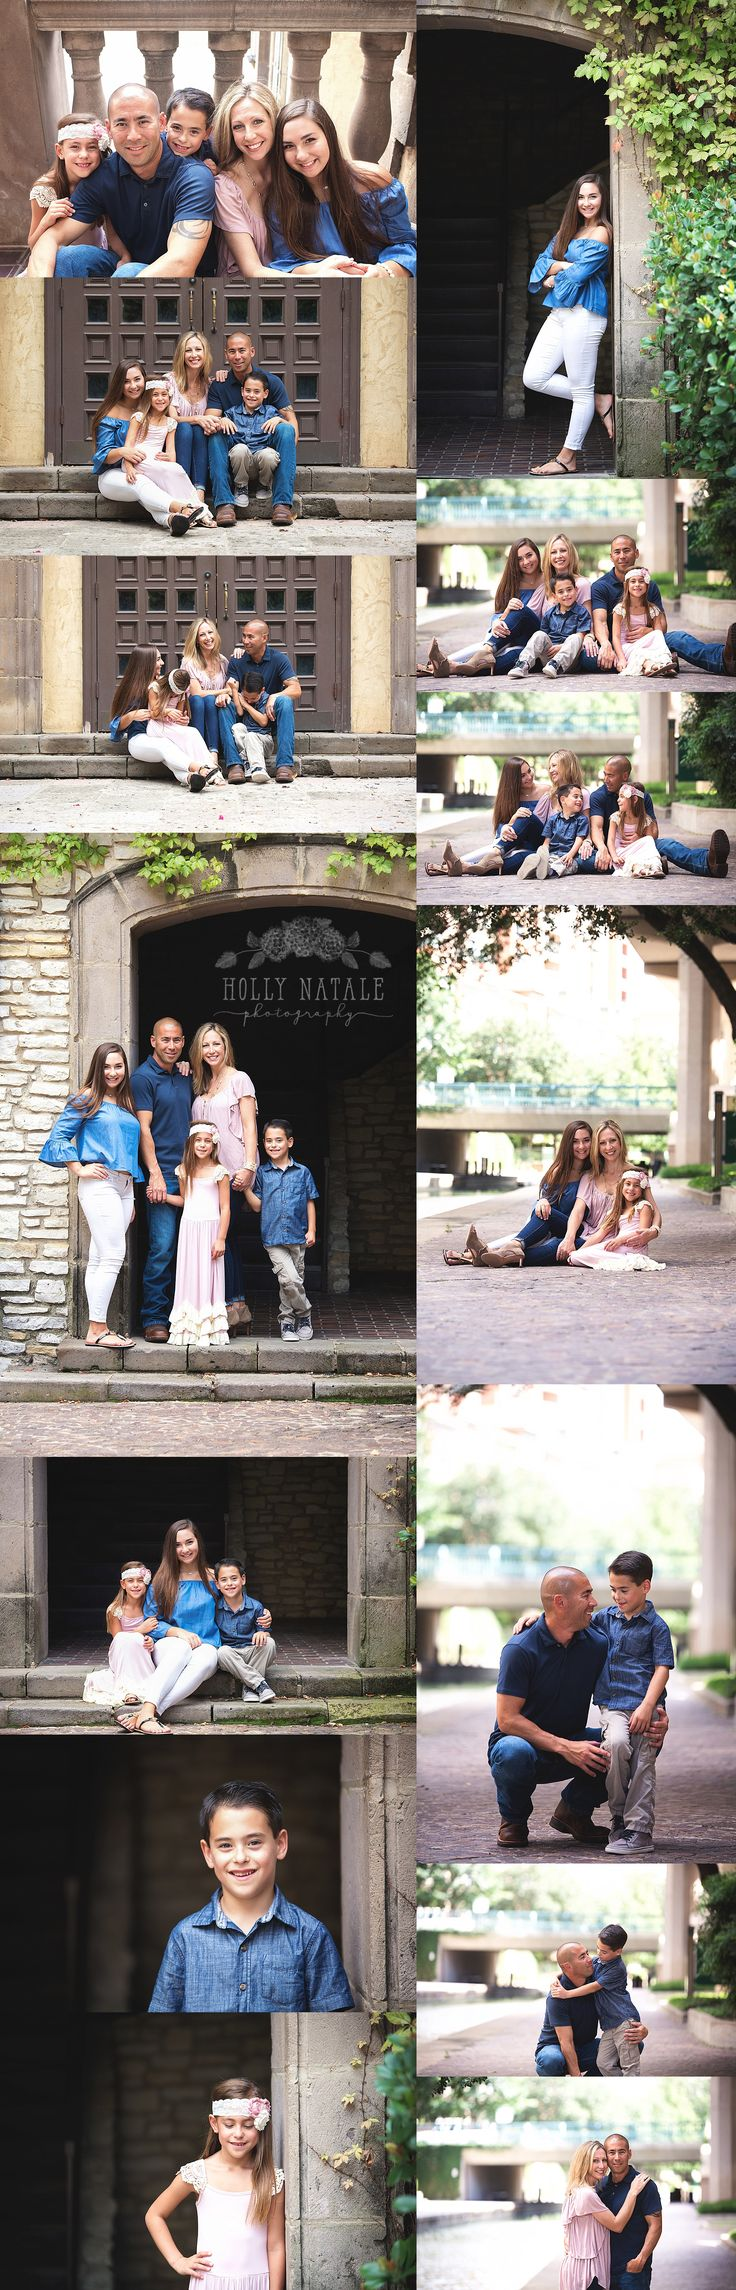 I've been photographing this sweet family for a few years now and I was so excited when Mom suggested the Las Colinas Canals for their session this year. I had never shot down there before but I had seen plenty of pictures from that spot and I was so excited to go down there. It did not disappoint…